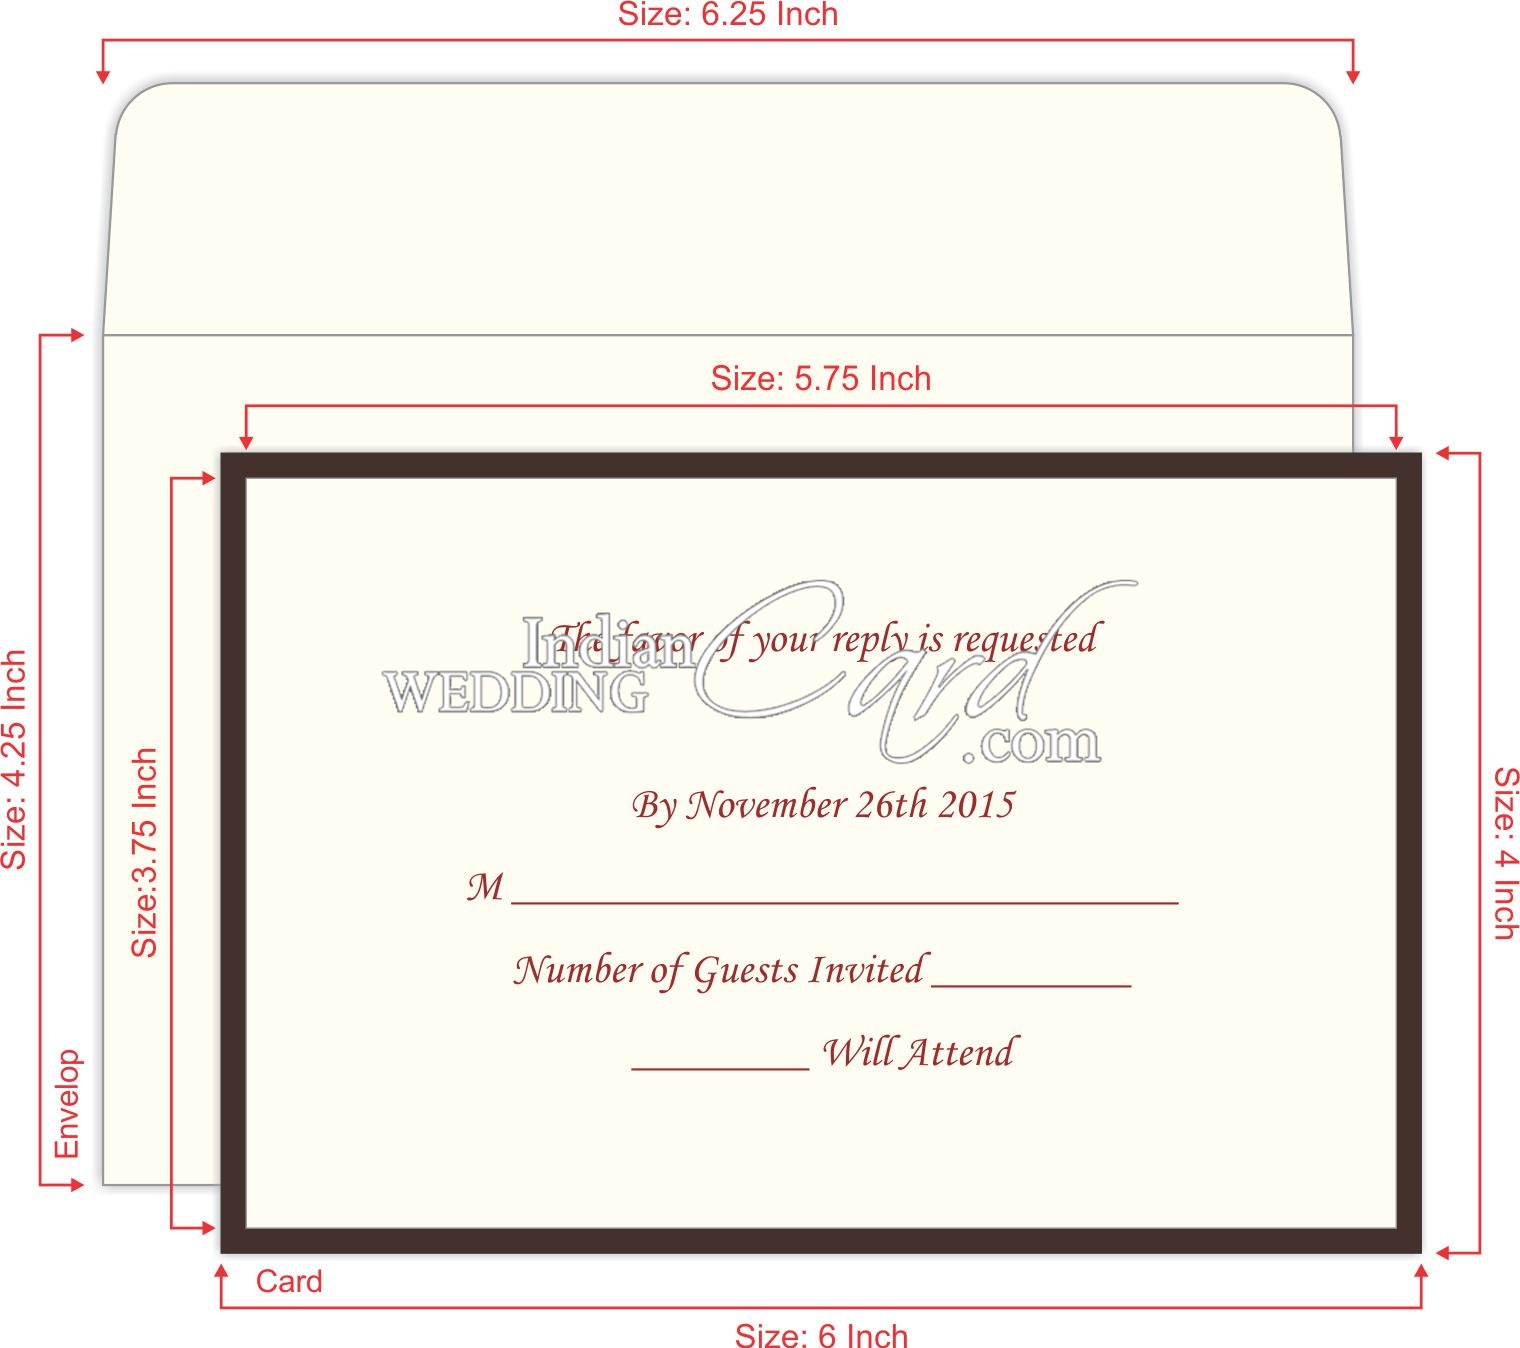 Rsvp message for wedding